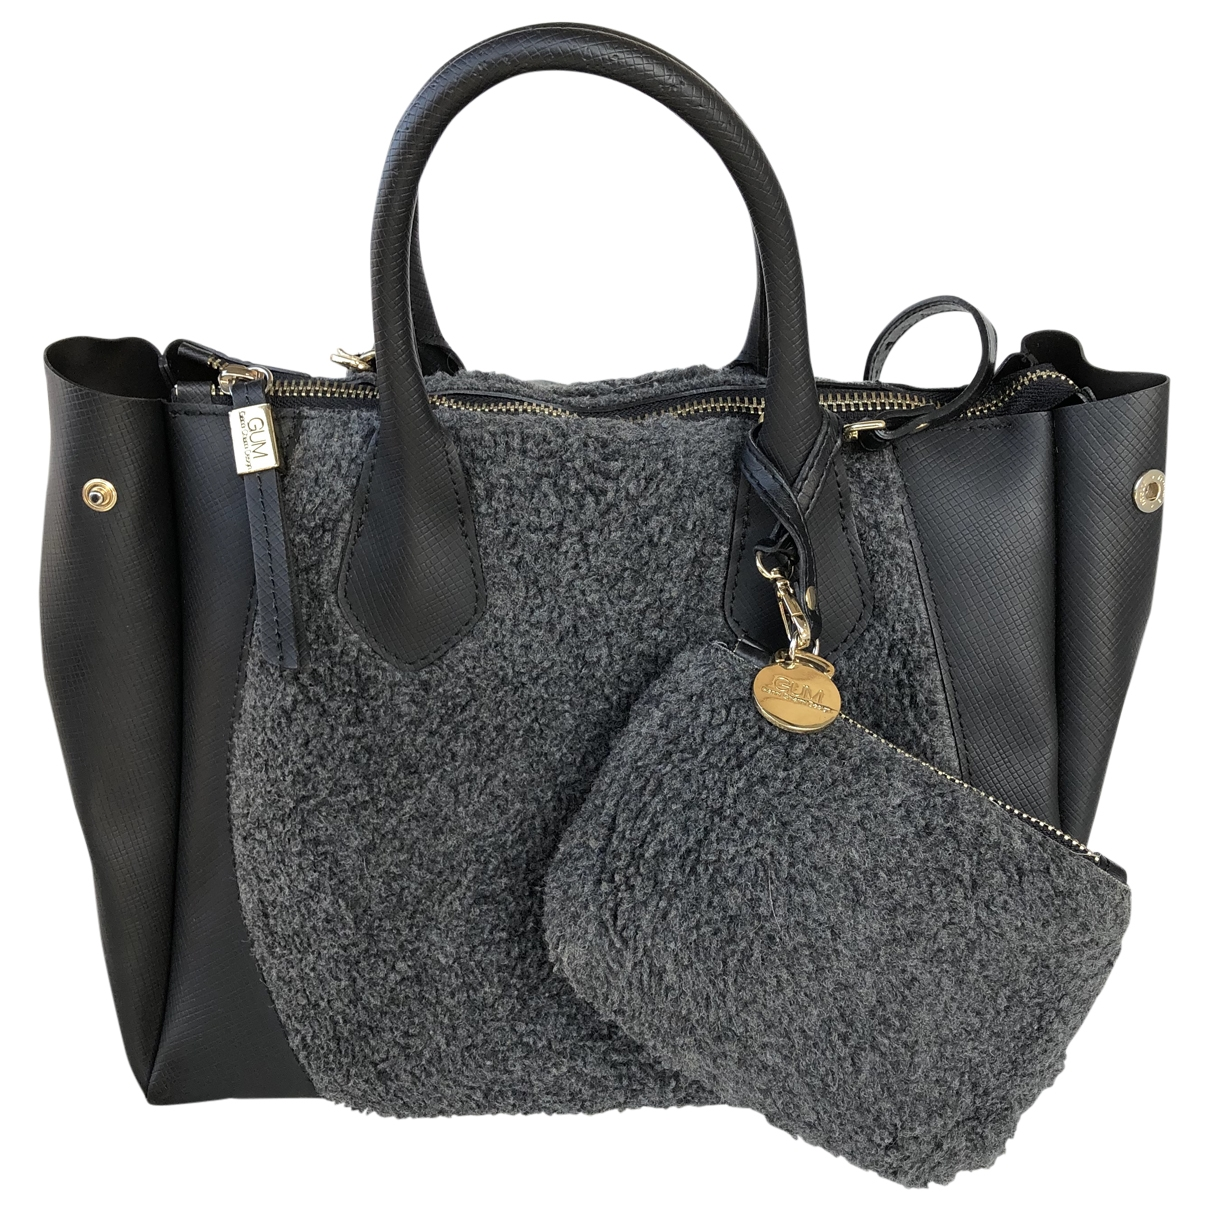 Gianni Chiarini \N Black handbag for Women \N